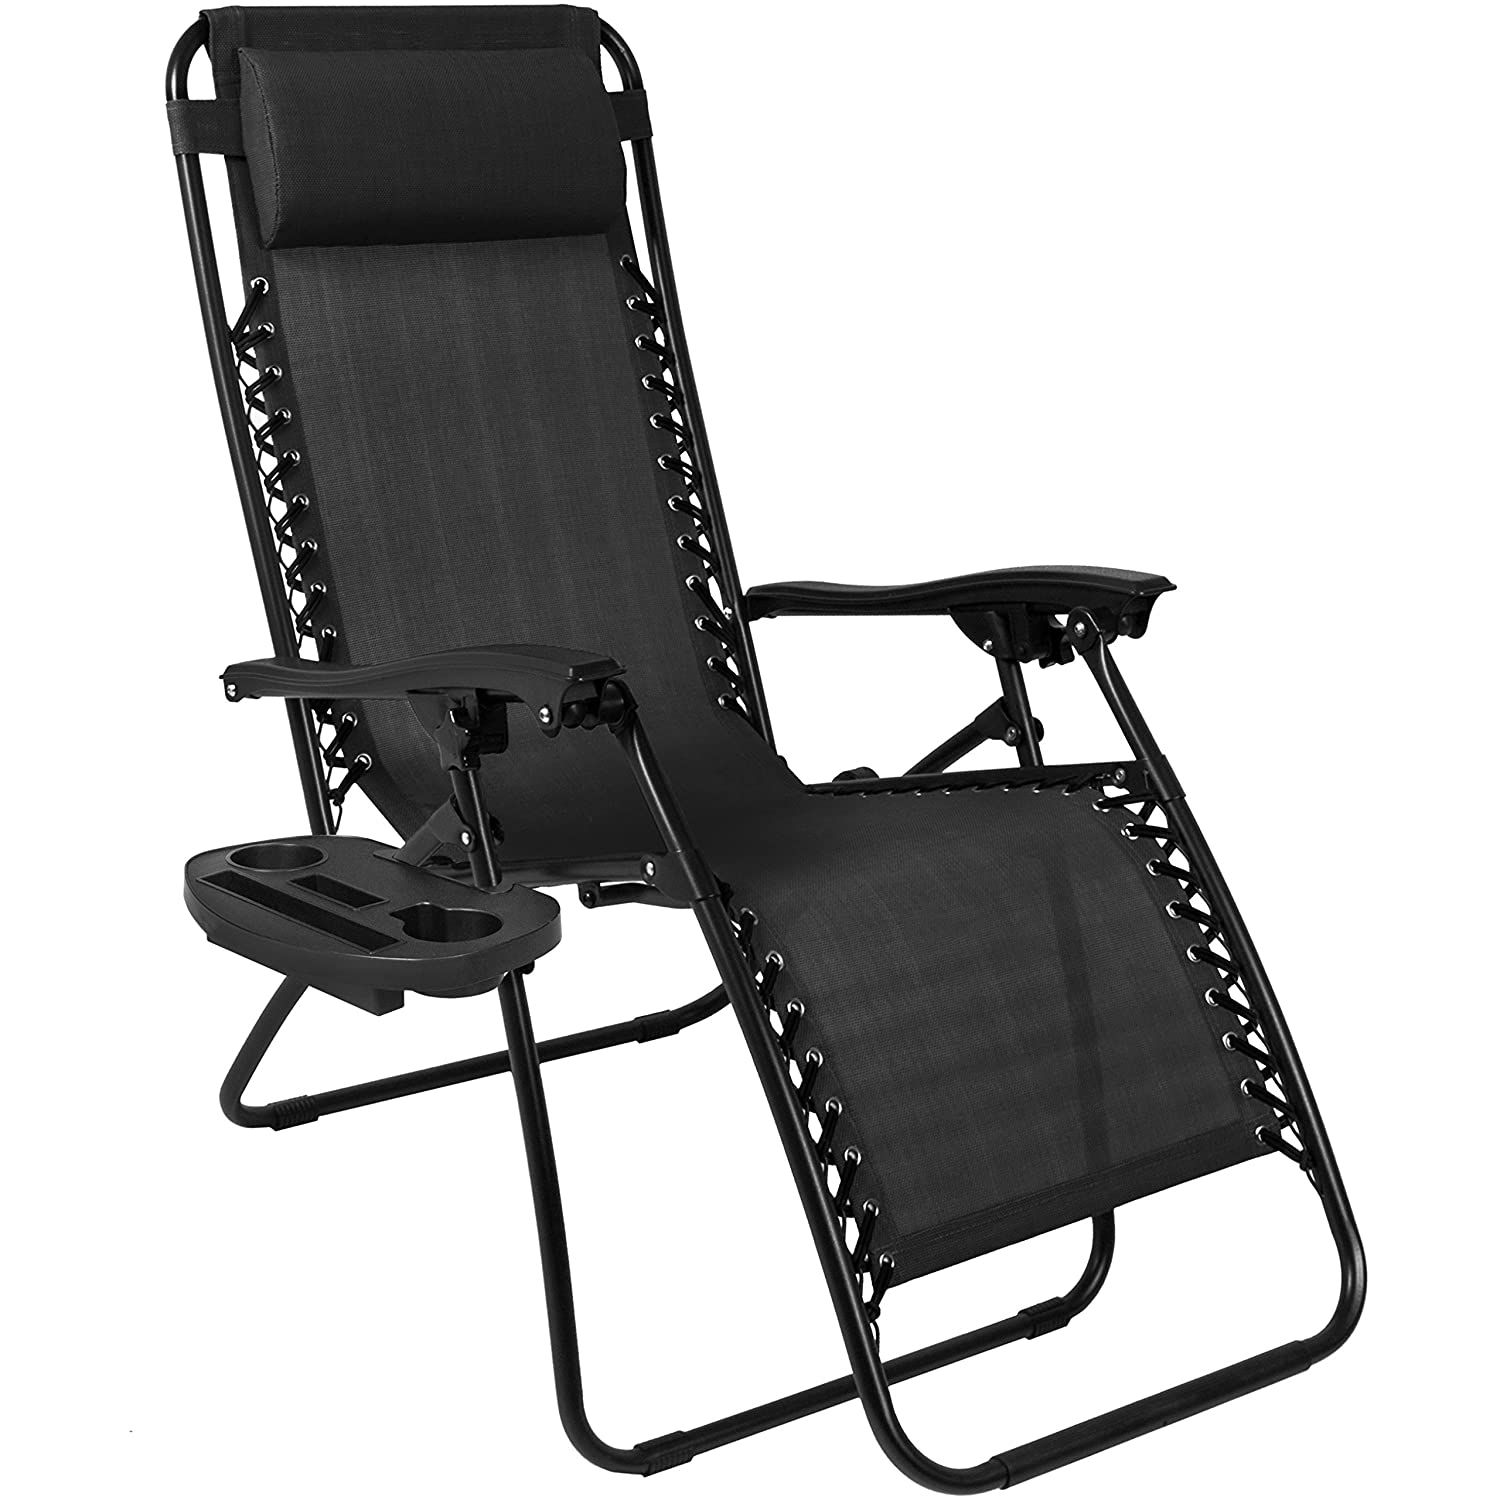 Best Choice Products Zero Gravity Chairs Case Of 2 Black Lounge Patio Chairs  Outdoor Yard Beach New